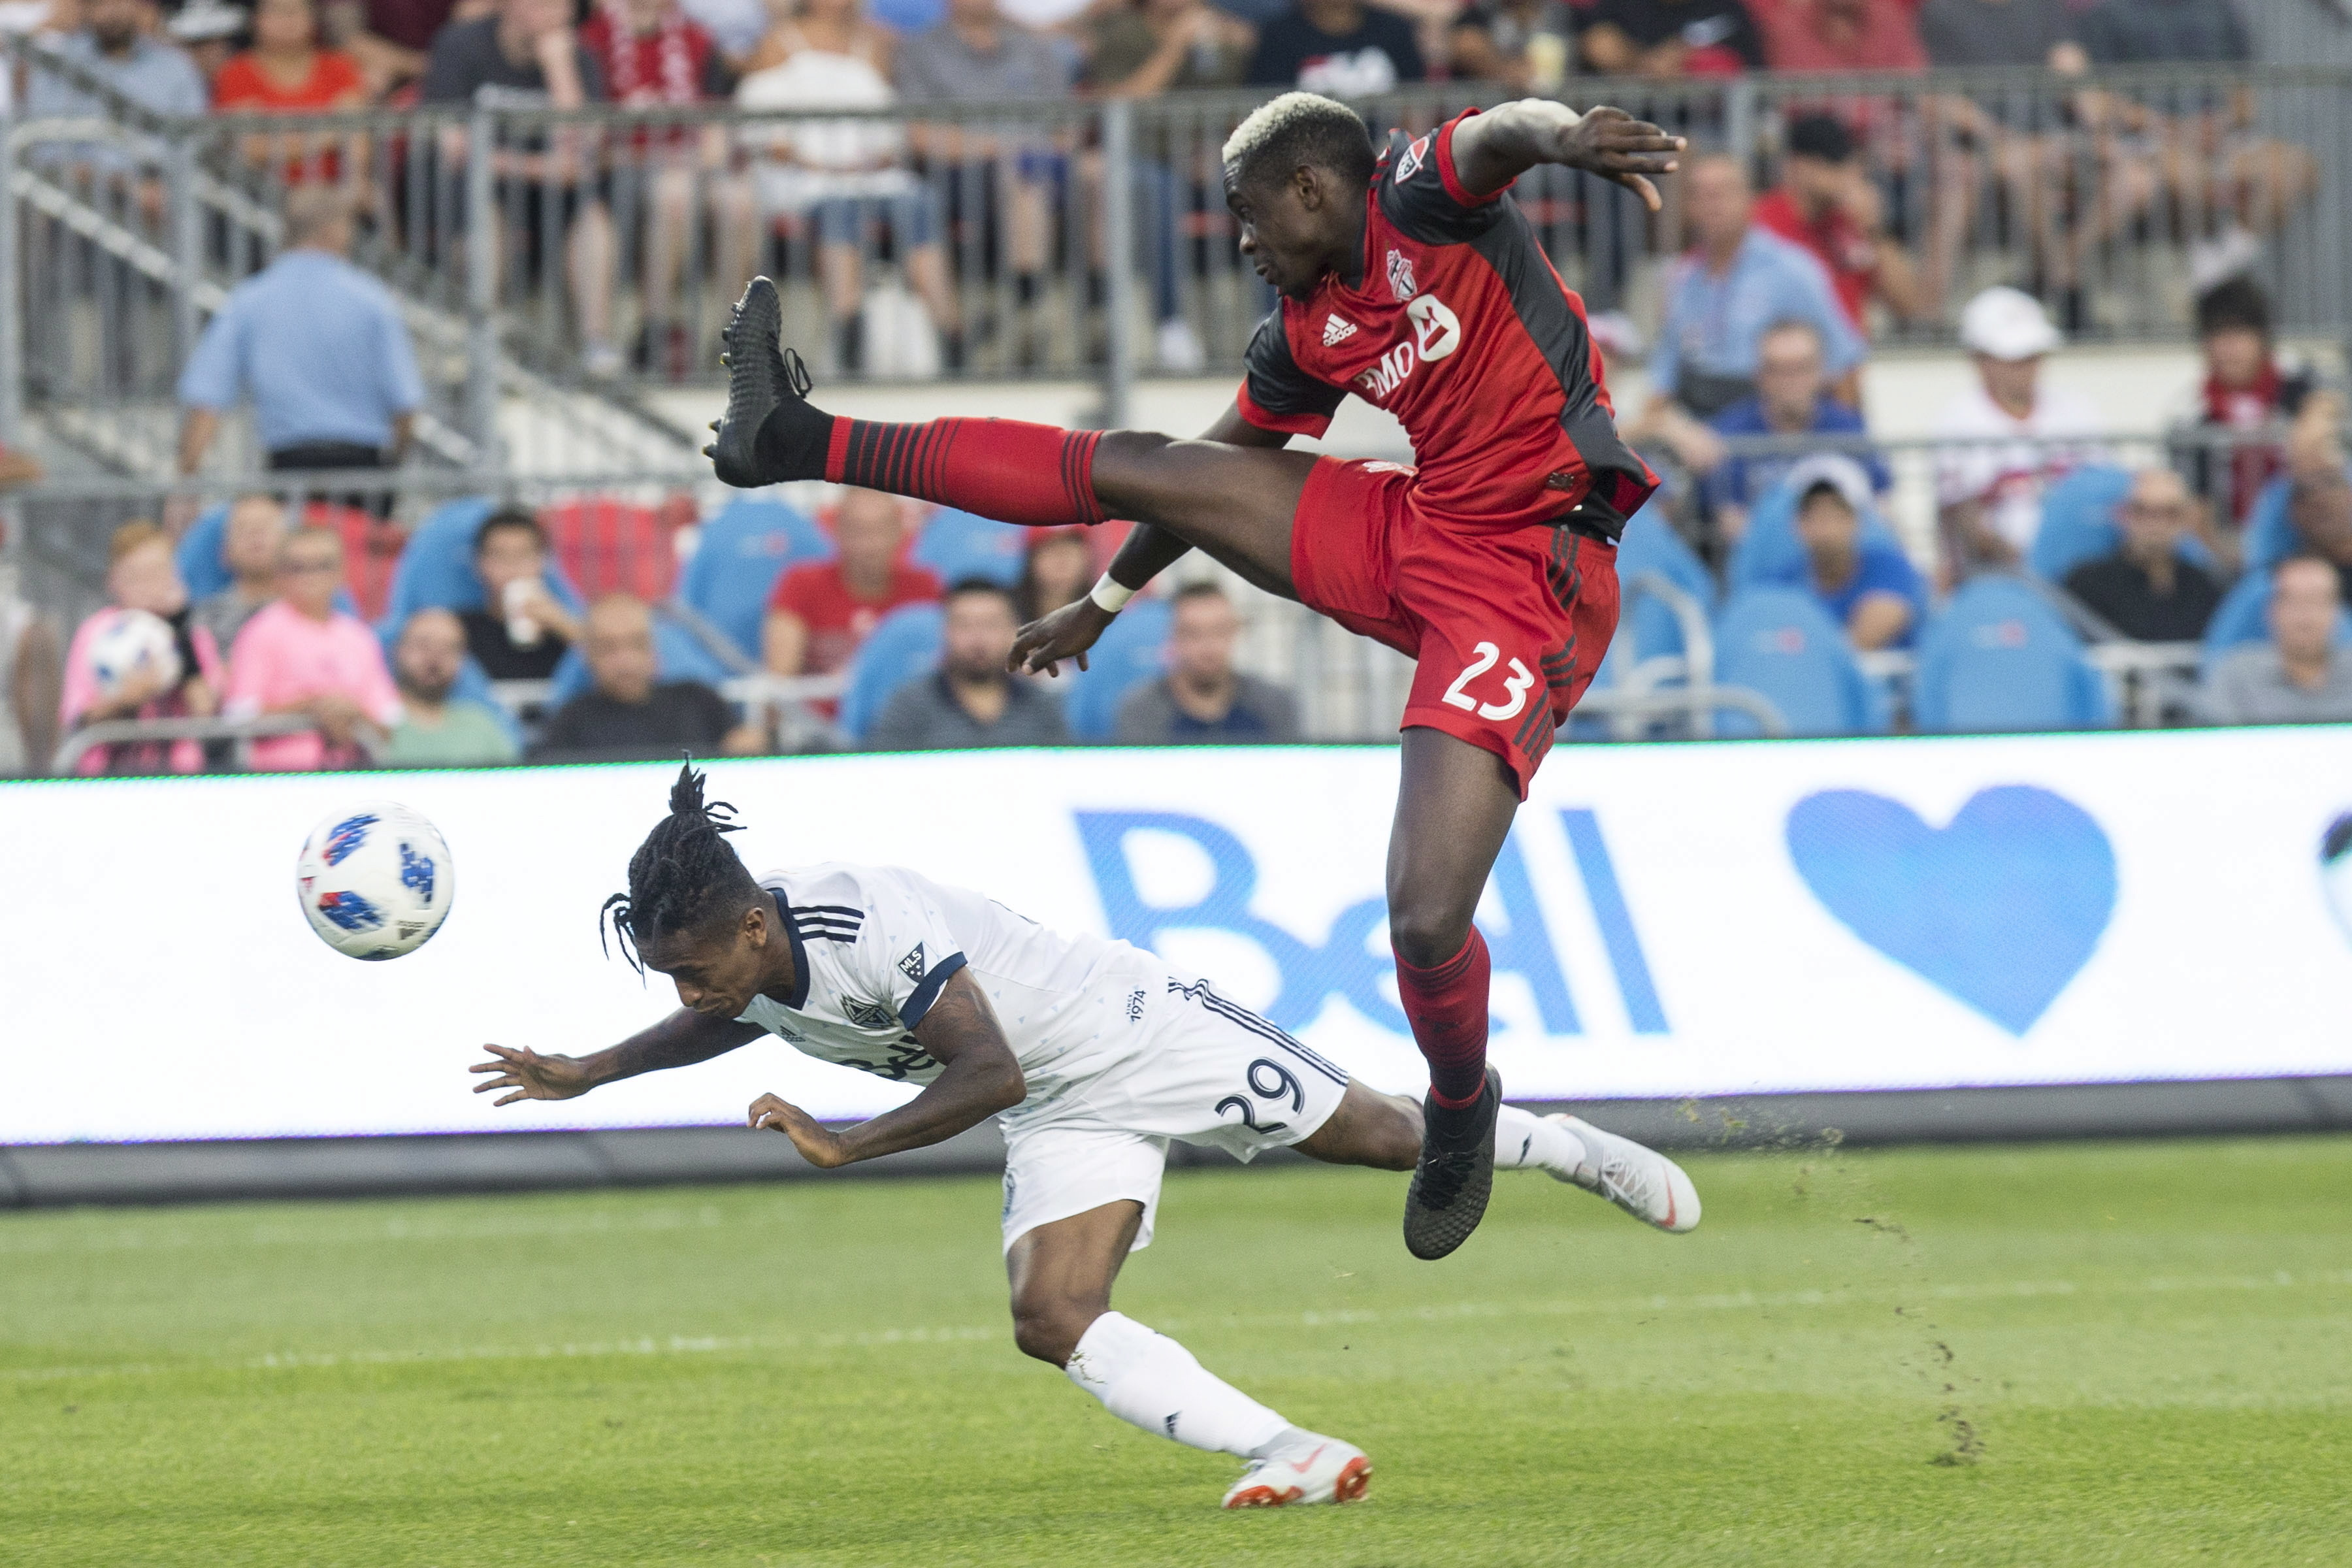 Jozy Altidore has hat trick, Toronto FC wins Canadian title